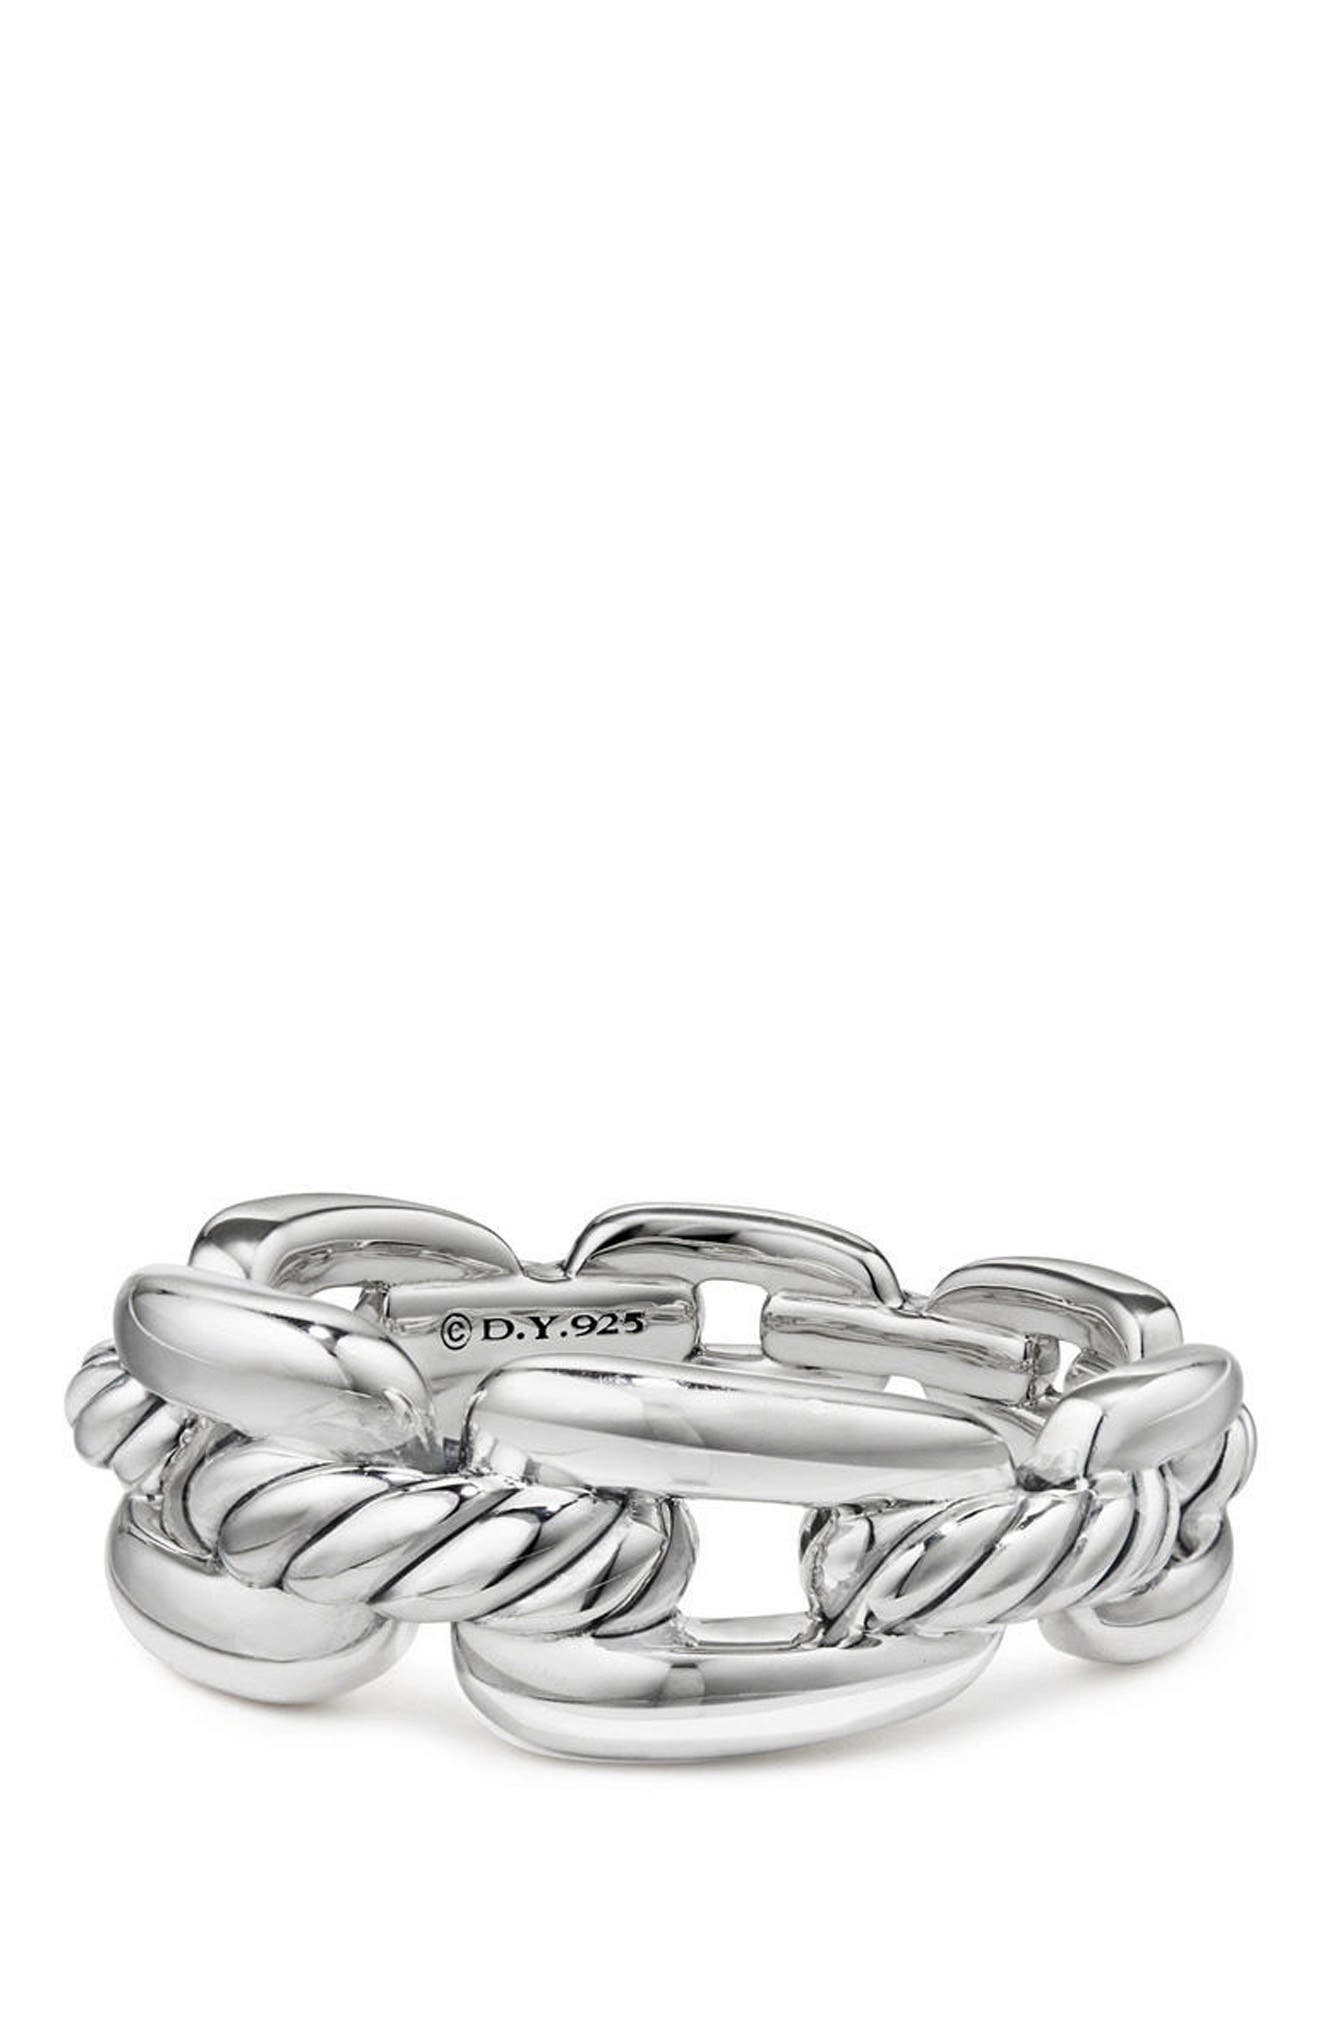 DAVID YURMAN Wellesley Chain Link Ring with Diamonds, Main, color, SILVER